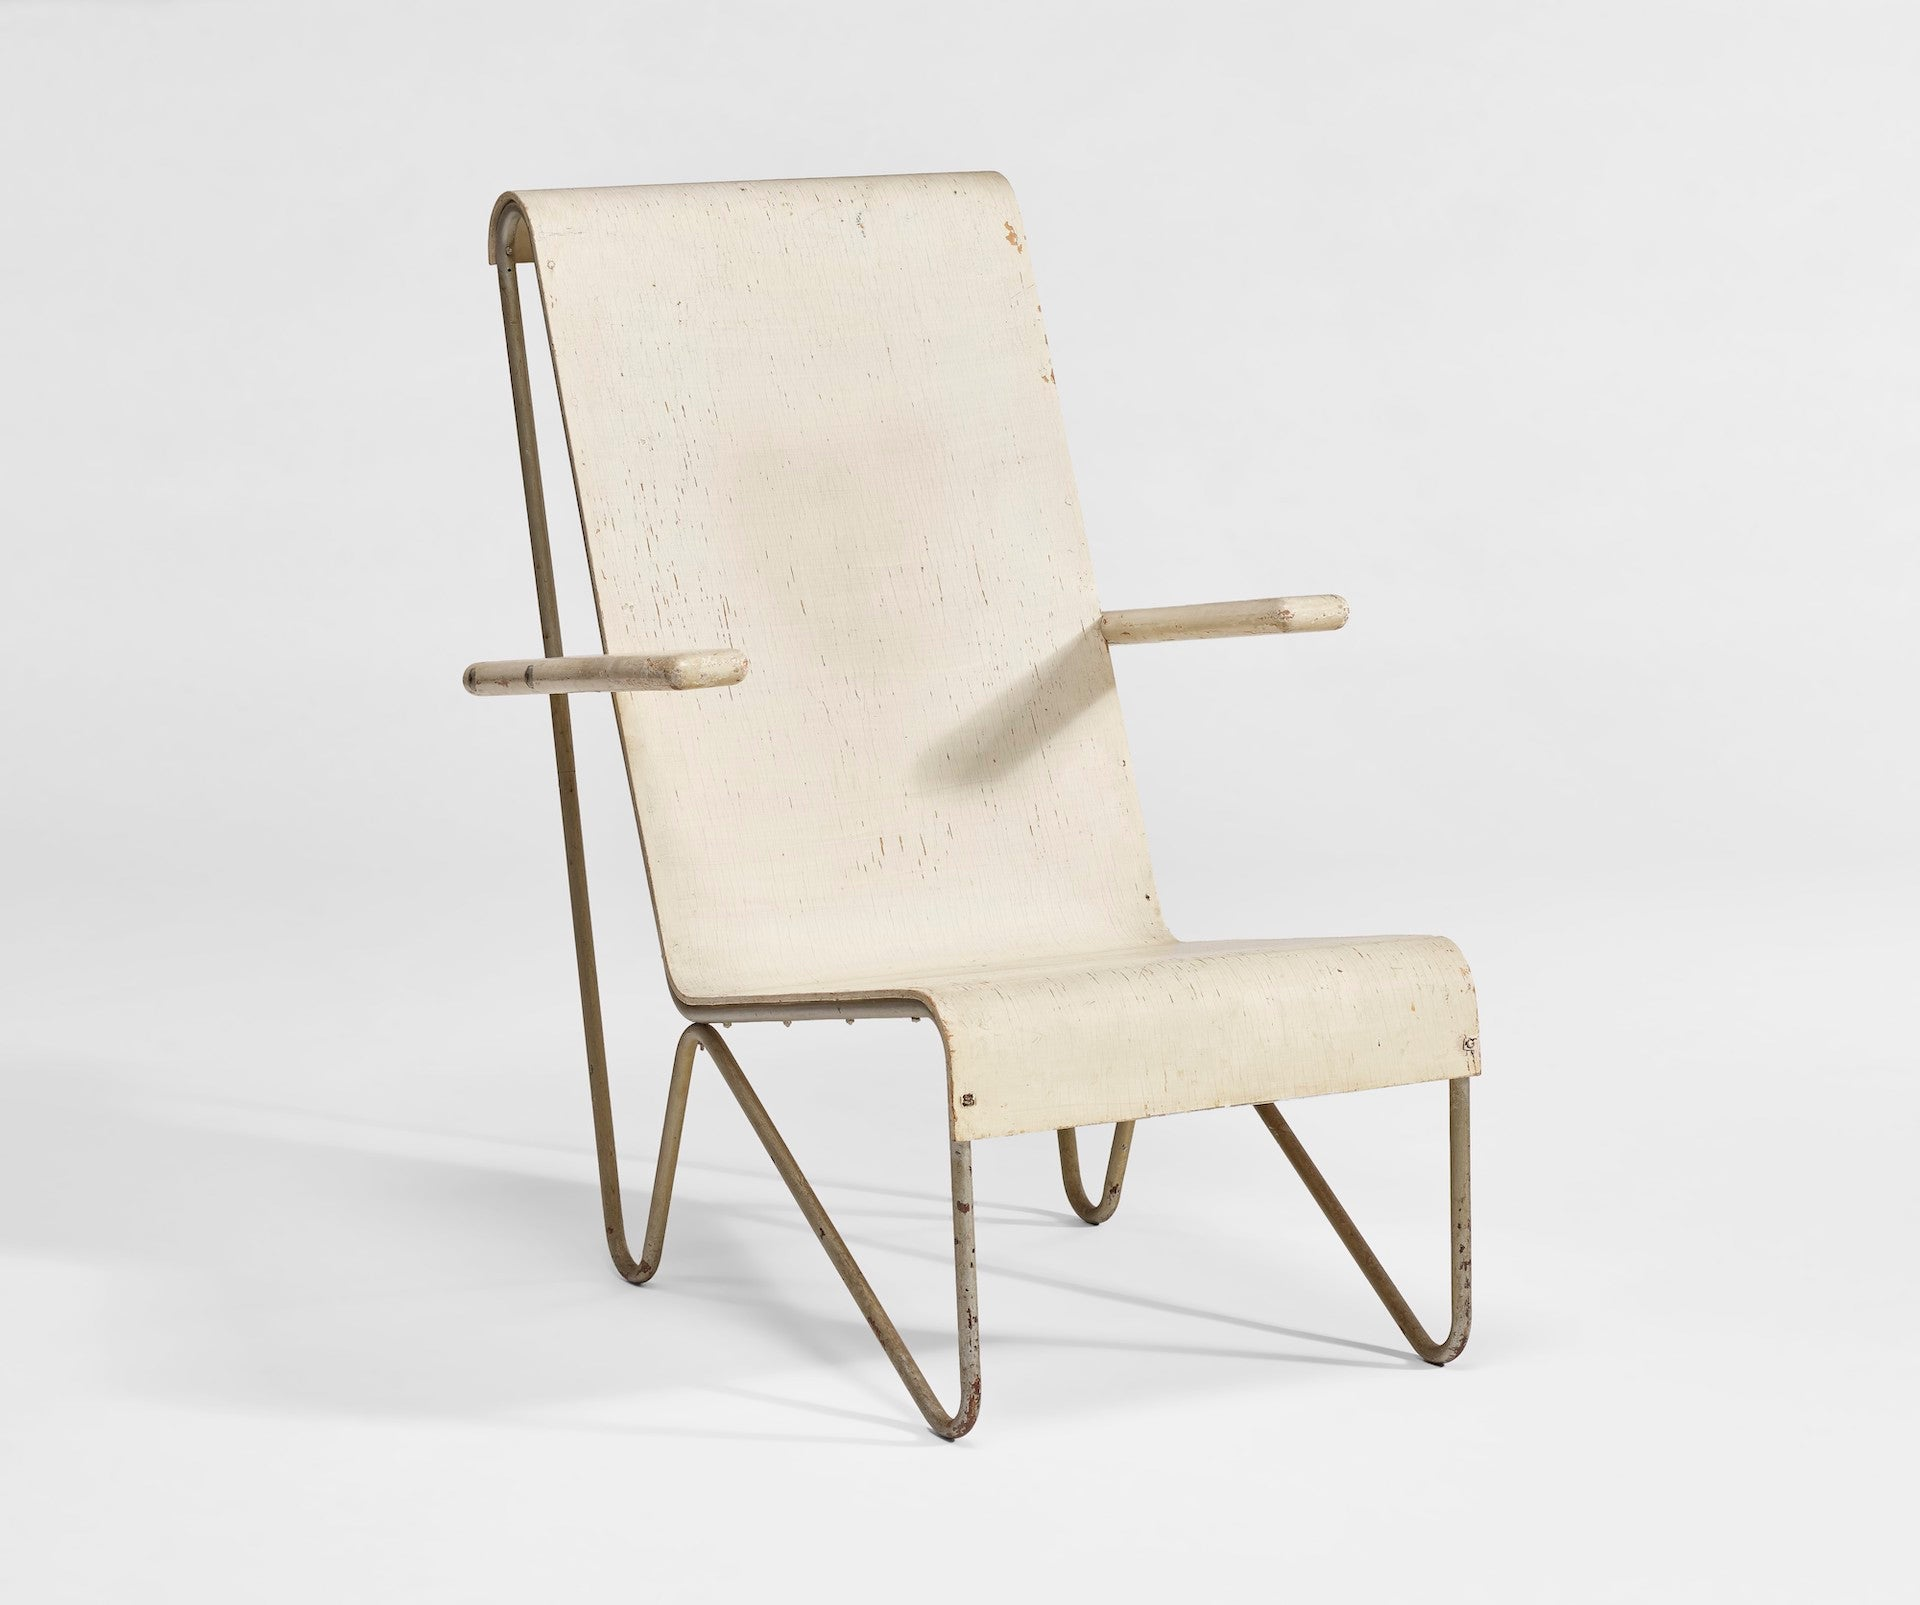 Christie's New York 27 May 2021 - Design [lot 290]: Early Tubed-Framed Beugelstoel Chair by Gerrit Rietveld, 1927. Estimate: $25,000 - $35,000. Sold: $300,00. Photo © Christie's Images Limited 2021